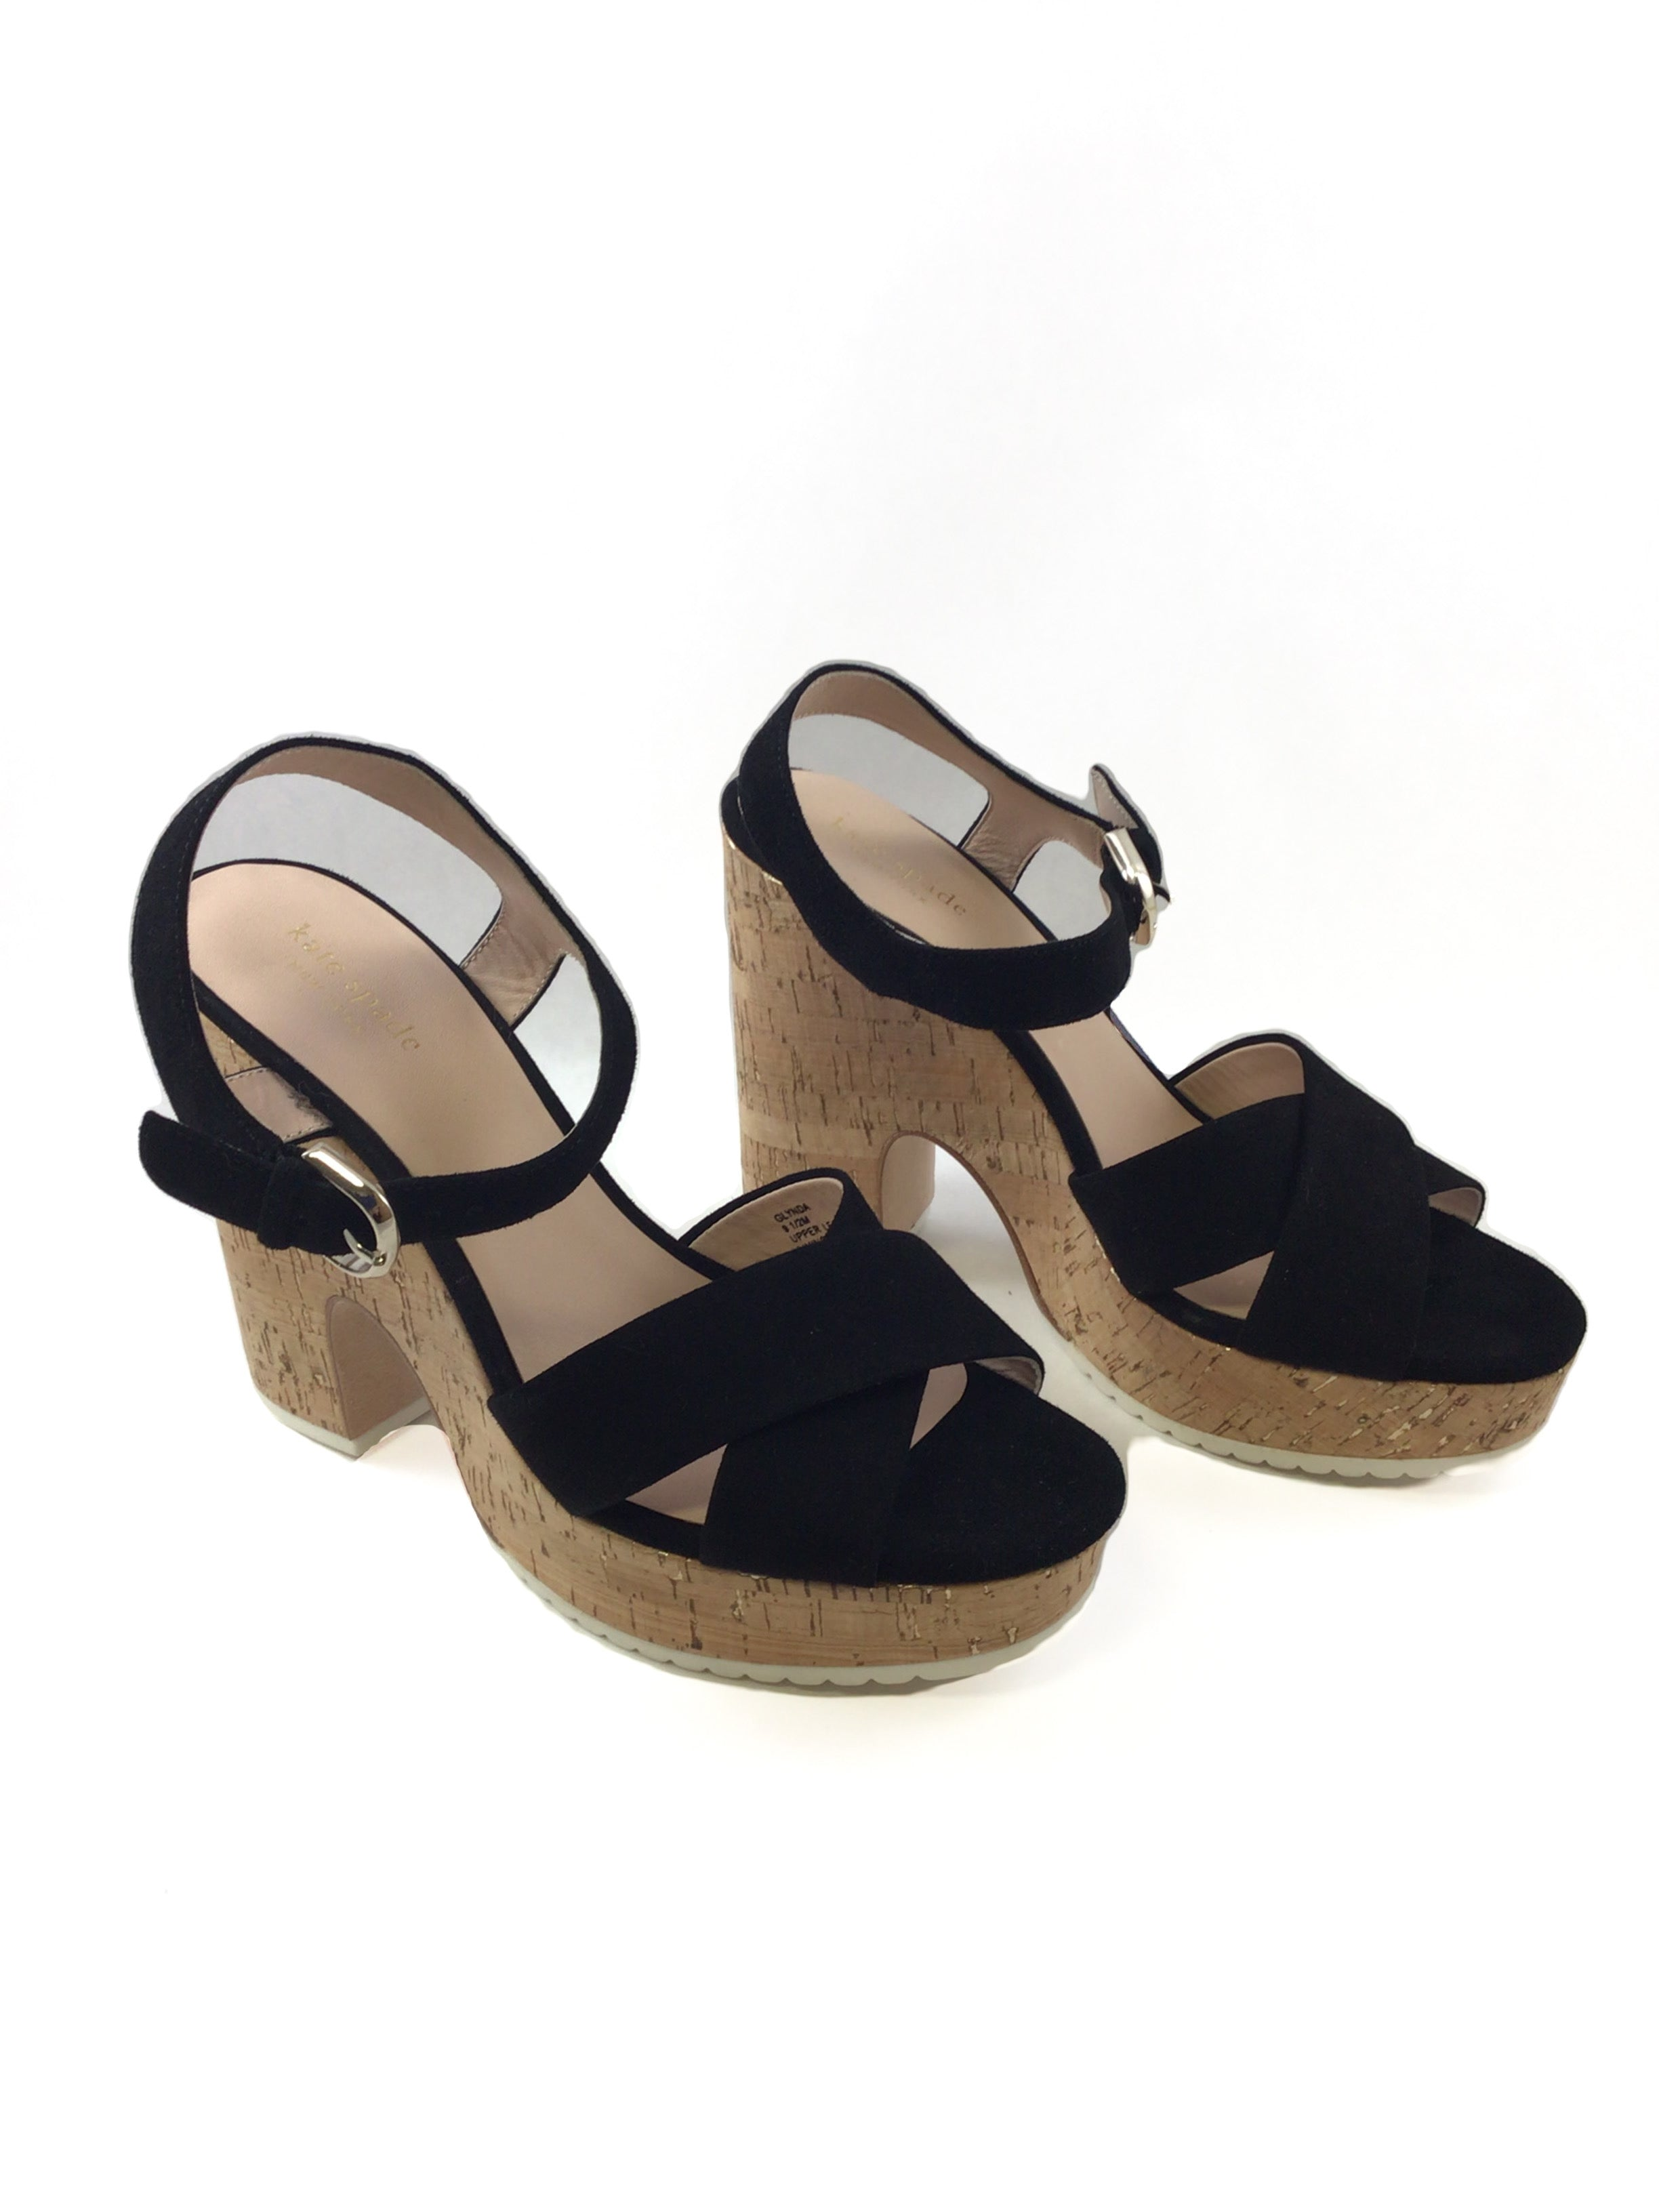 Primary Photo - BRAND: KATE SPADE <BR>STYLE: SHOES LOW HEEL <BR>COLOR: BLACK <BR>SIZE: 9.5 <BR>SKU: 213-21394-44129